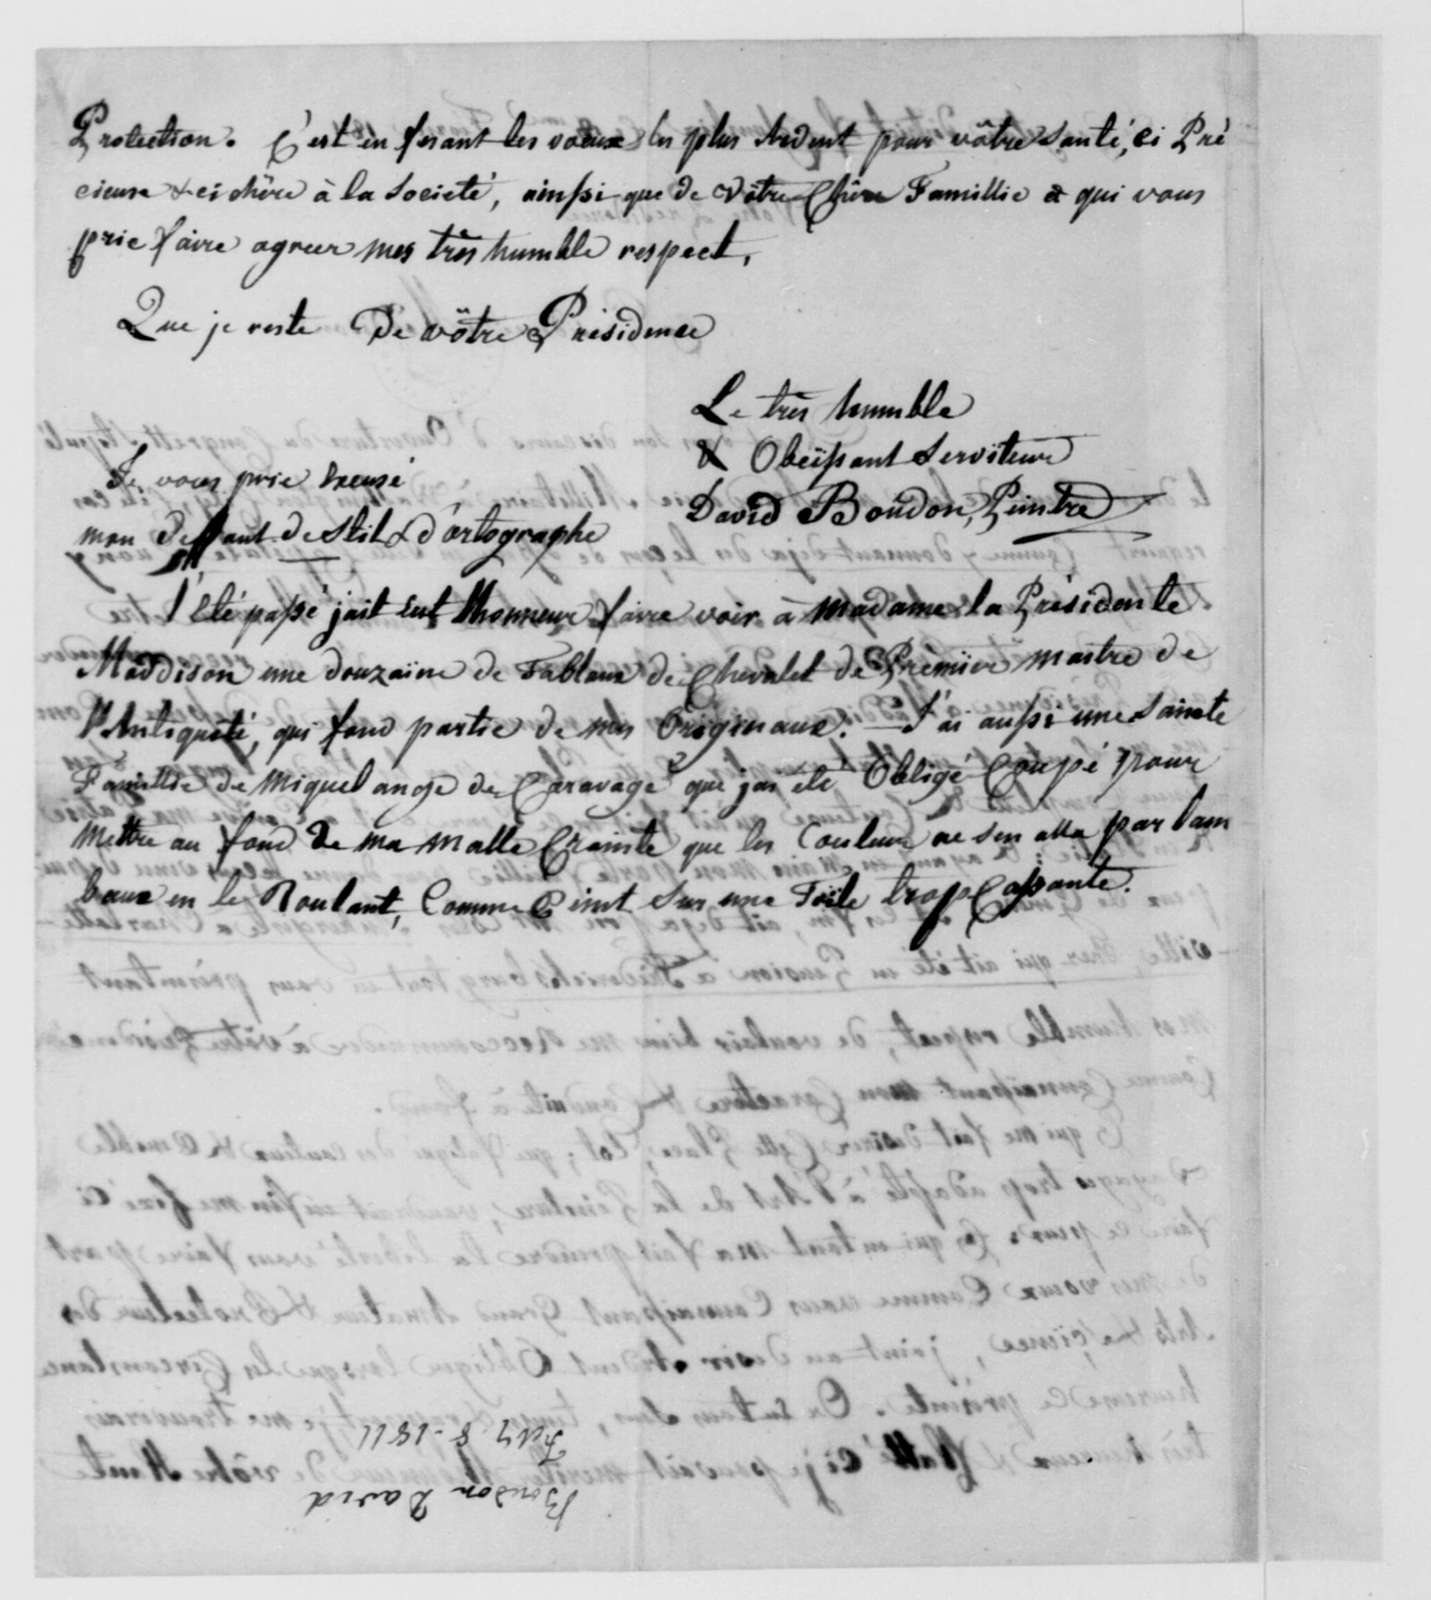 David Boudon to James Madison, February 18, 1811. In French.